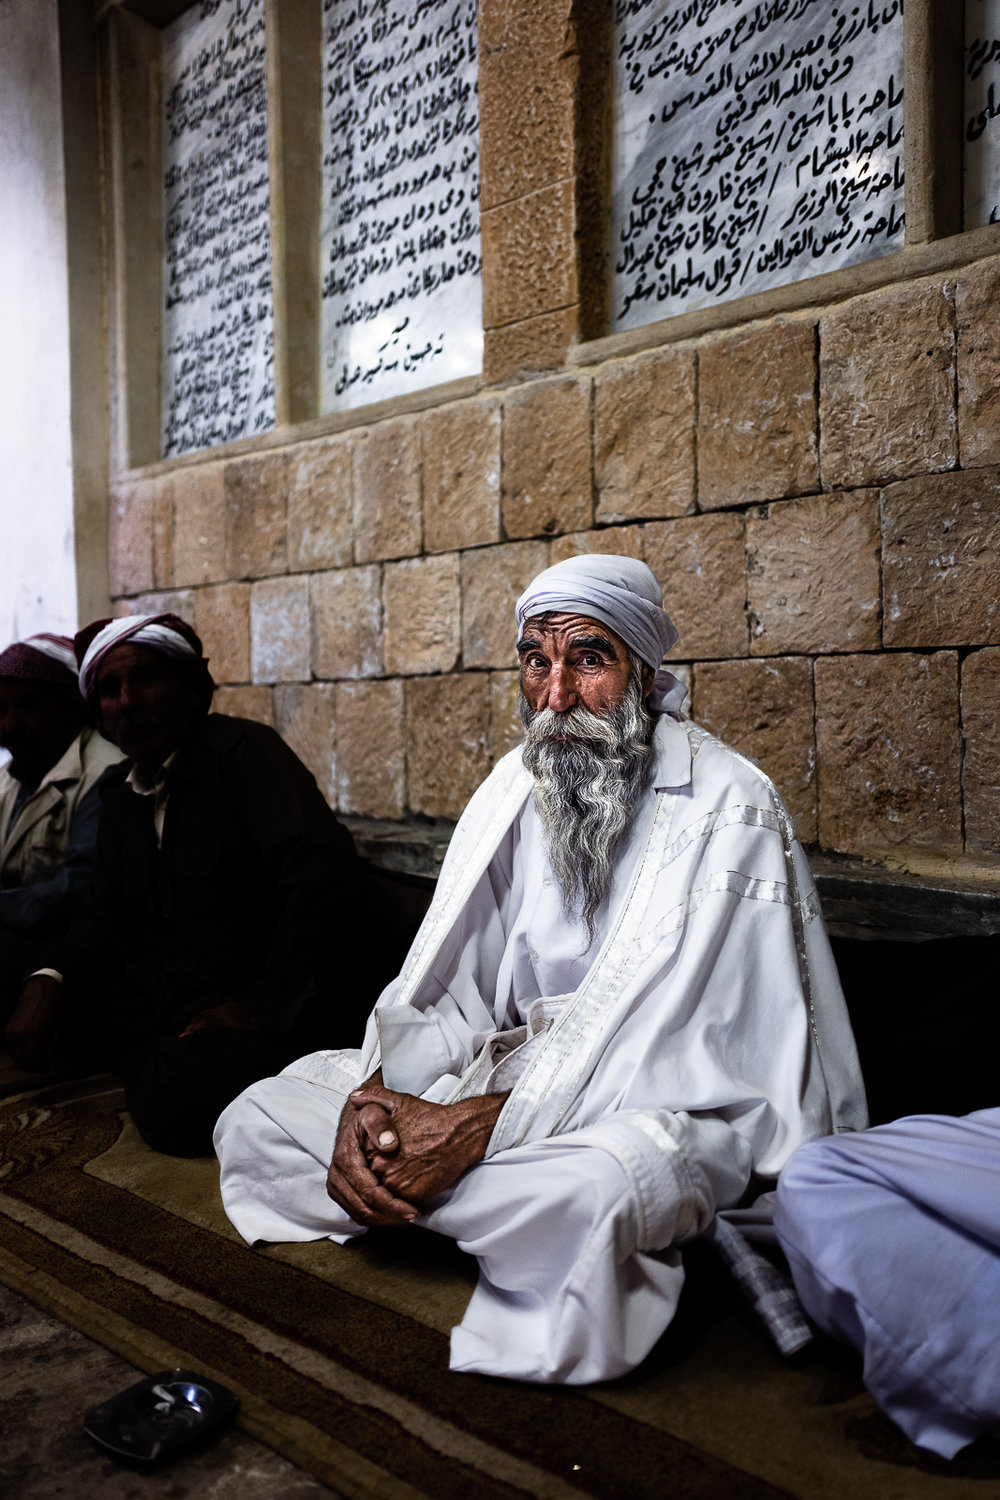 An important religious man in Lalish